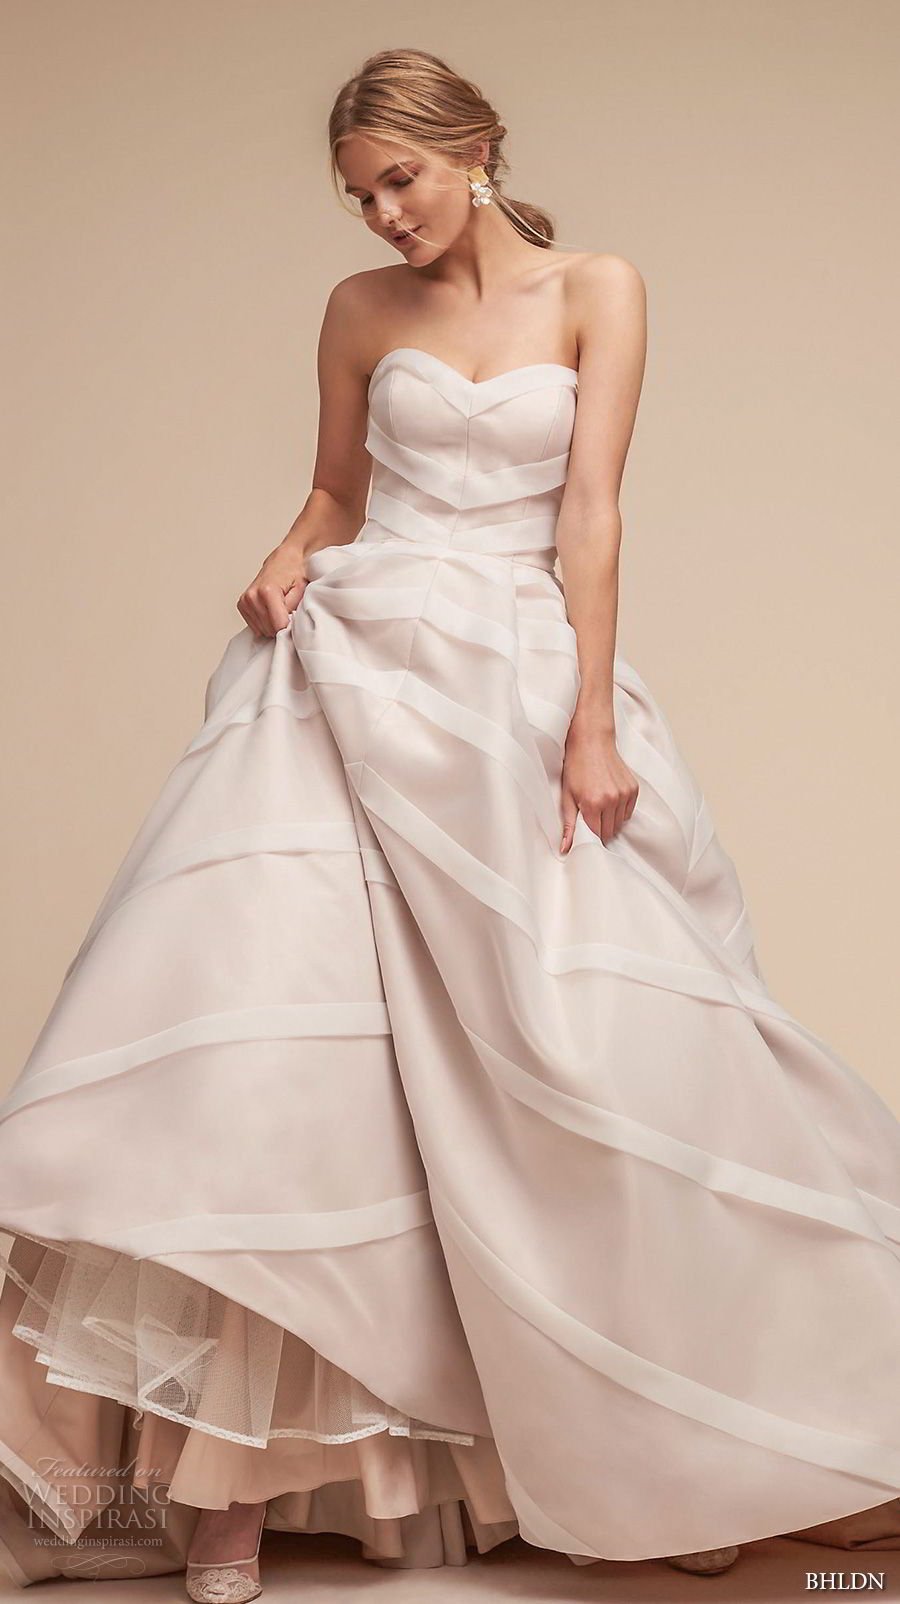 bhldn 2018 whispers bridal strapless sweetheart neckline princess ball gown a line wedding dress chapel train (13) mv